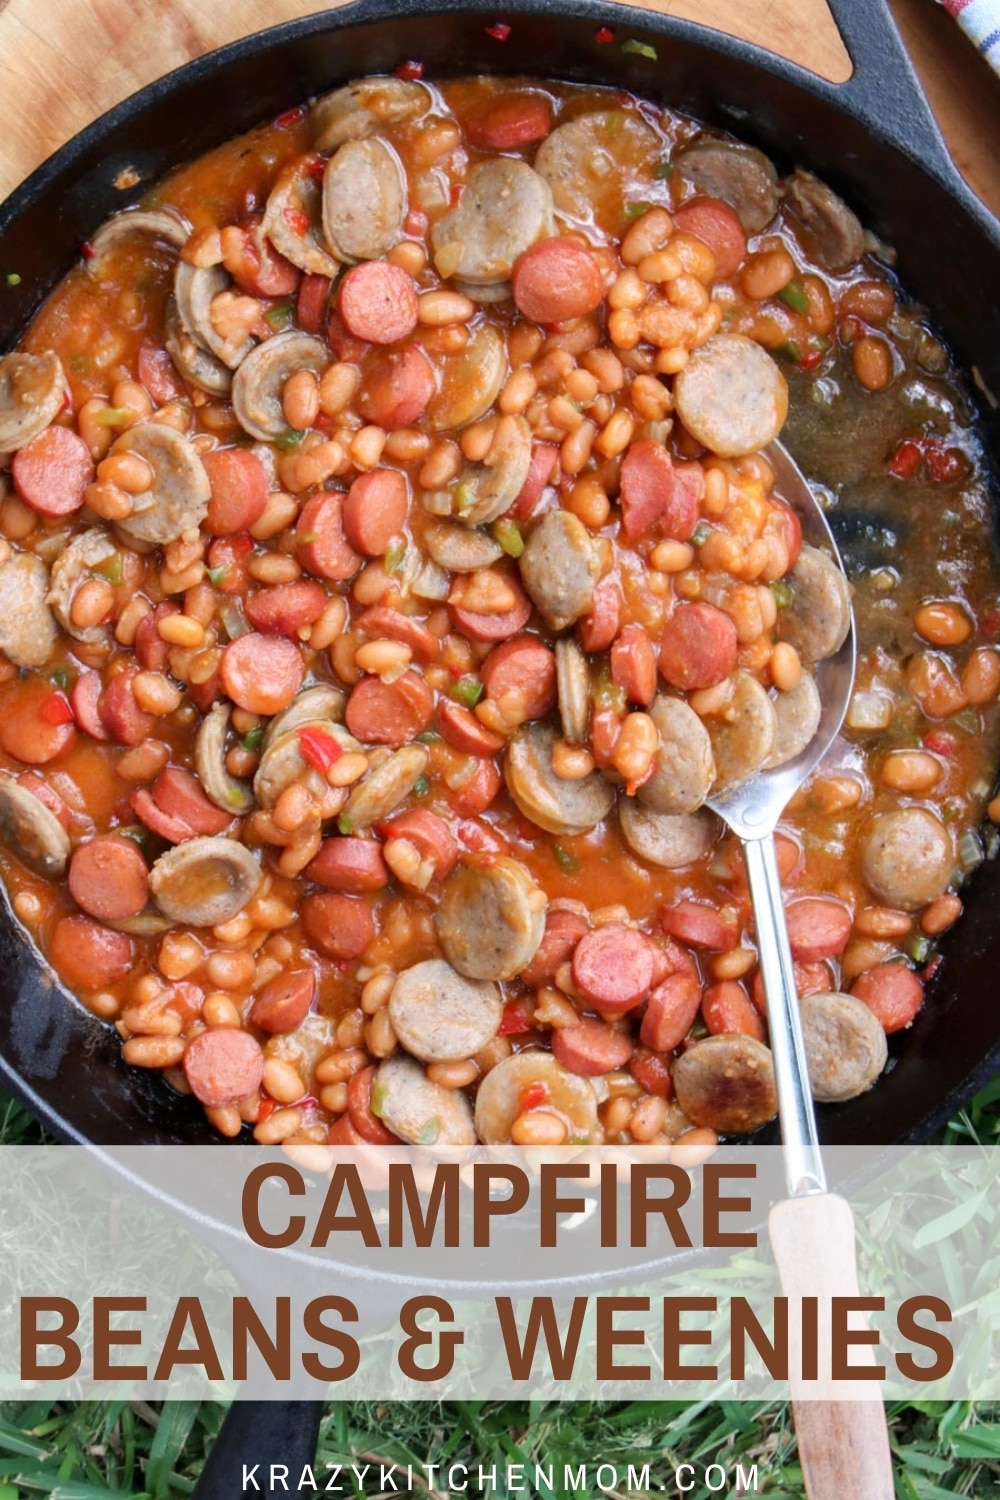 Summertime campfires and grills are heating up. Whip up a hearty family-friendly skillet of beans and weenies. via @krazykitchenmom